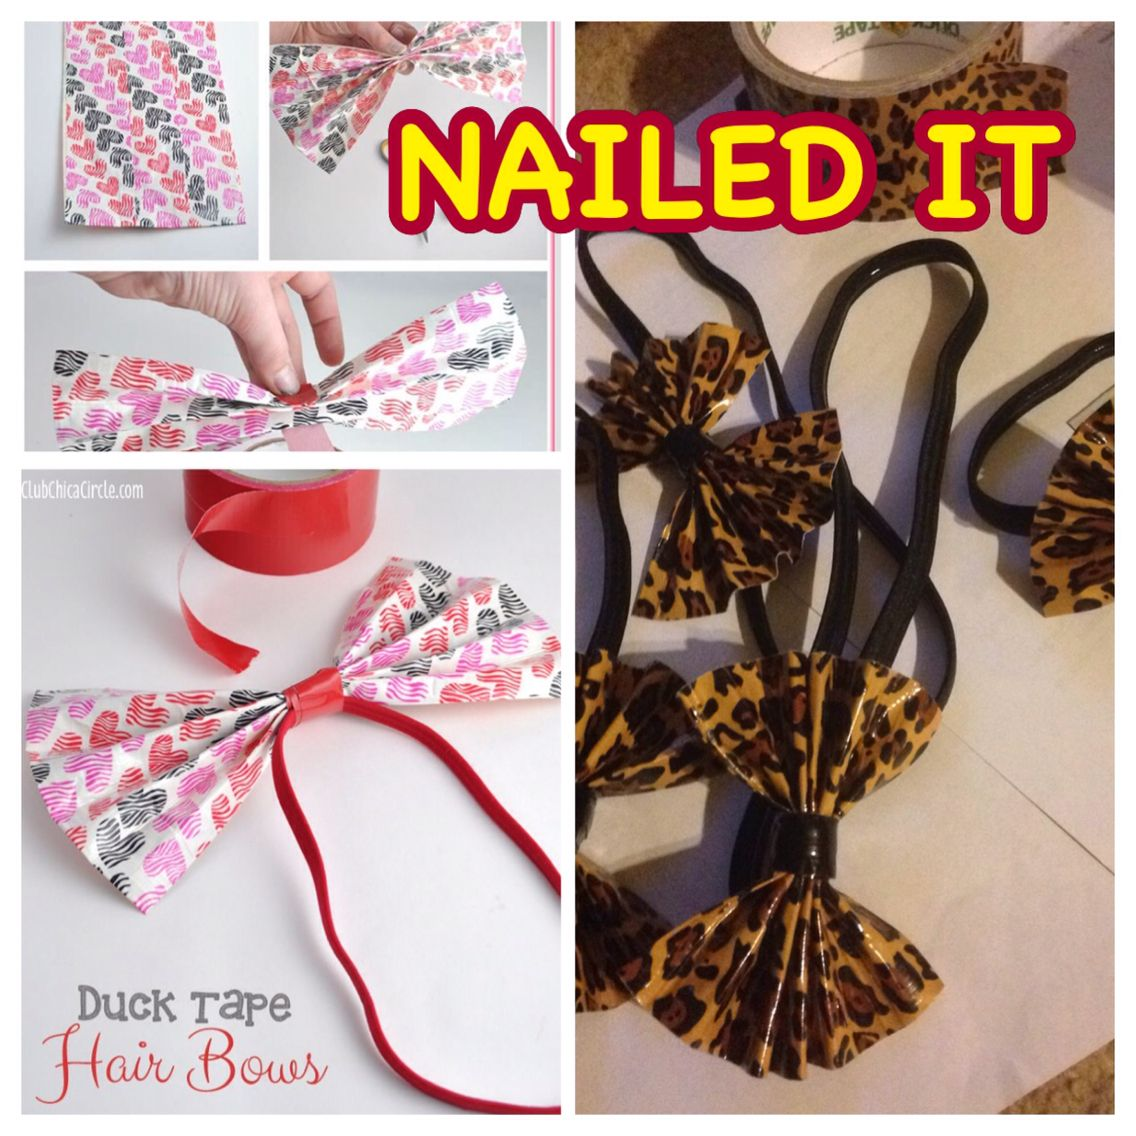 Duct Tape Headbands For My Little Girls Soccer Team The Cheetah Girls Are Gonna Be Beautiful The Cheetah Girls Girls Soccer Team My Little Girl